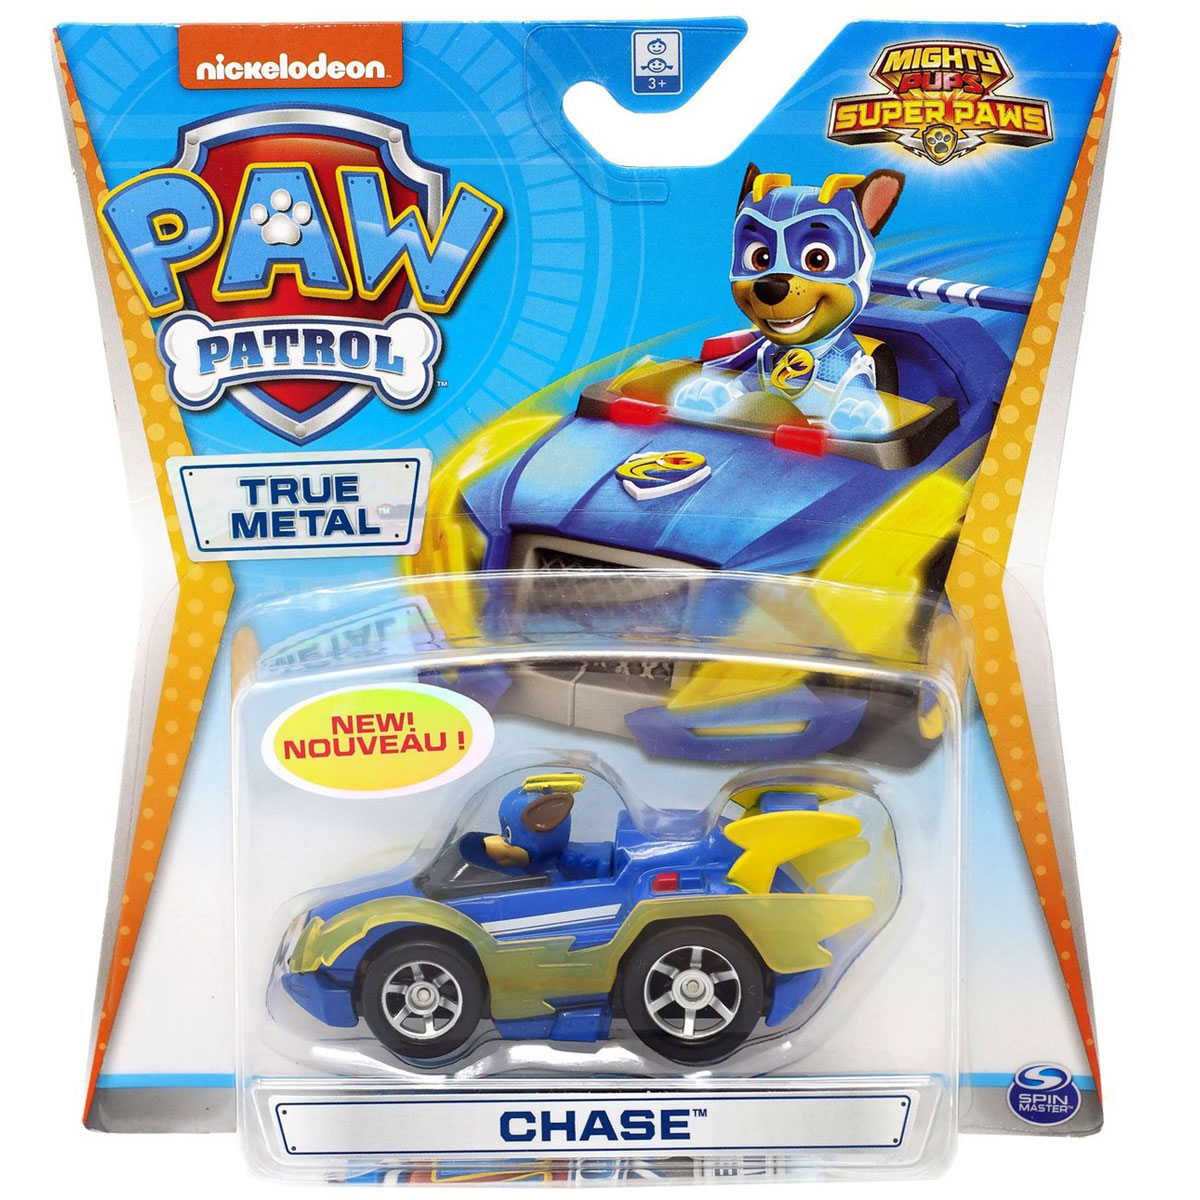 PAW Patrol True Metal Die-Cast Vehicle - Chase (Mighty Pups Super PAWS)